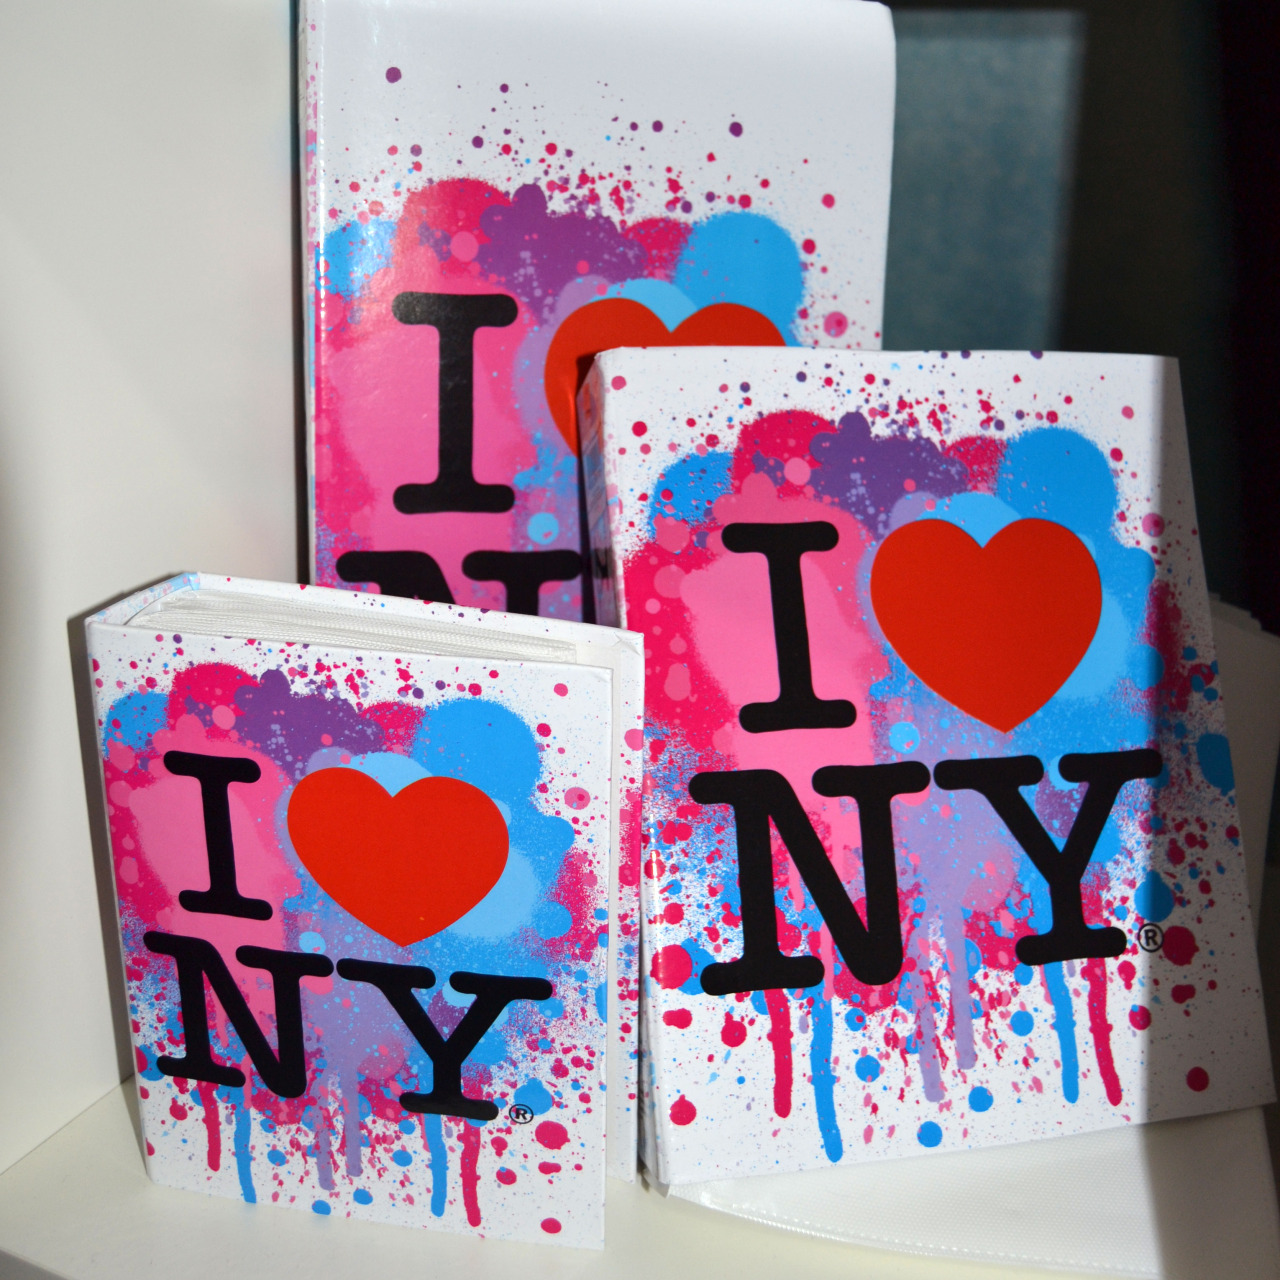 wgsn :      IheartNY is popping up in Las Vegas at the  Licensing Expo  2014.